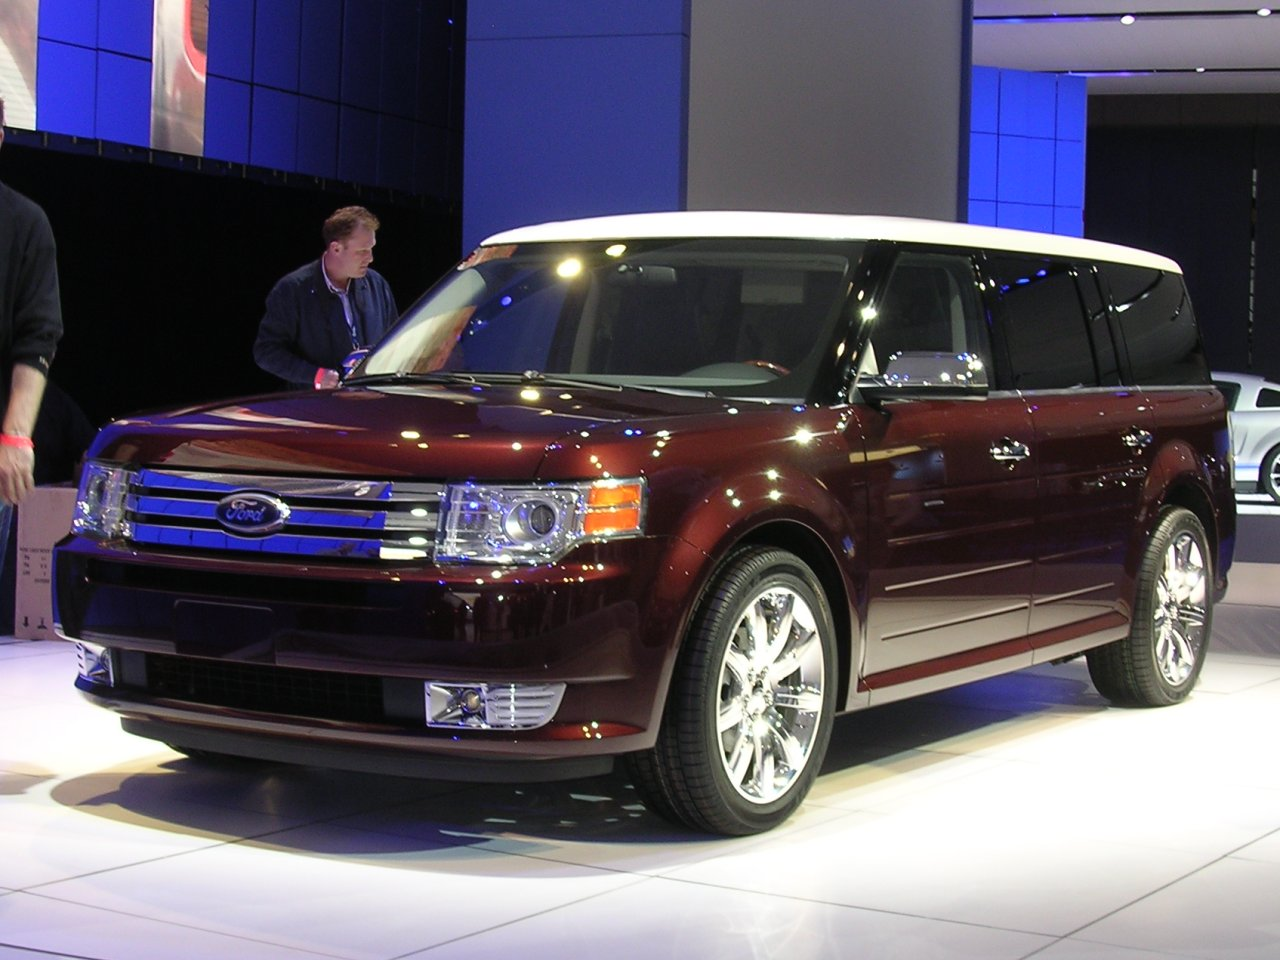 Ford flex 2009 photo - 6